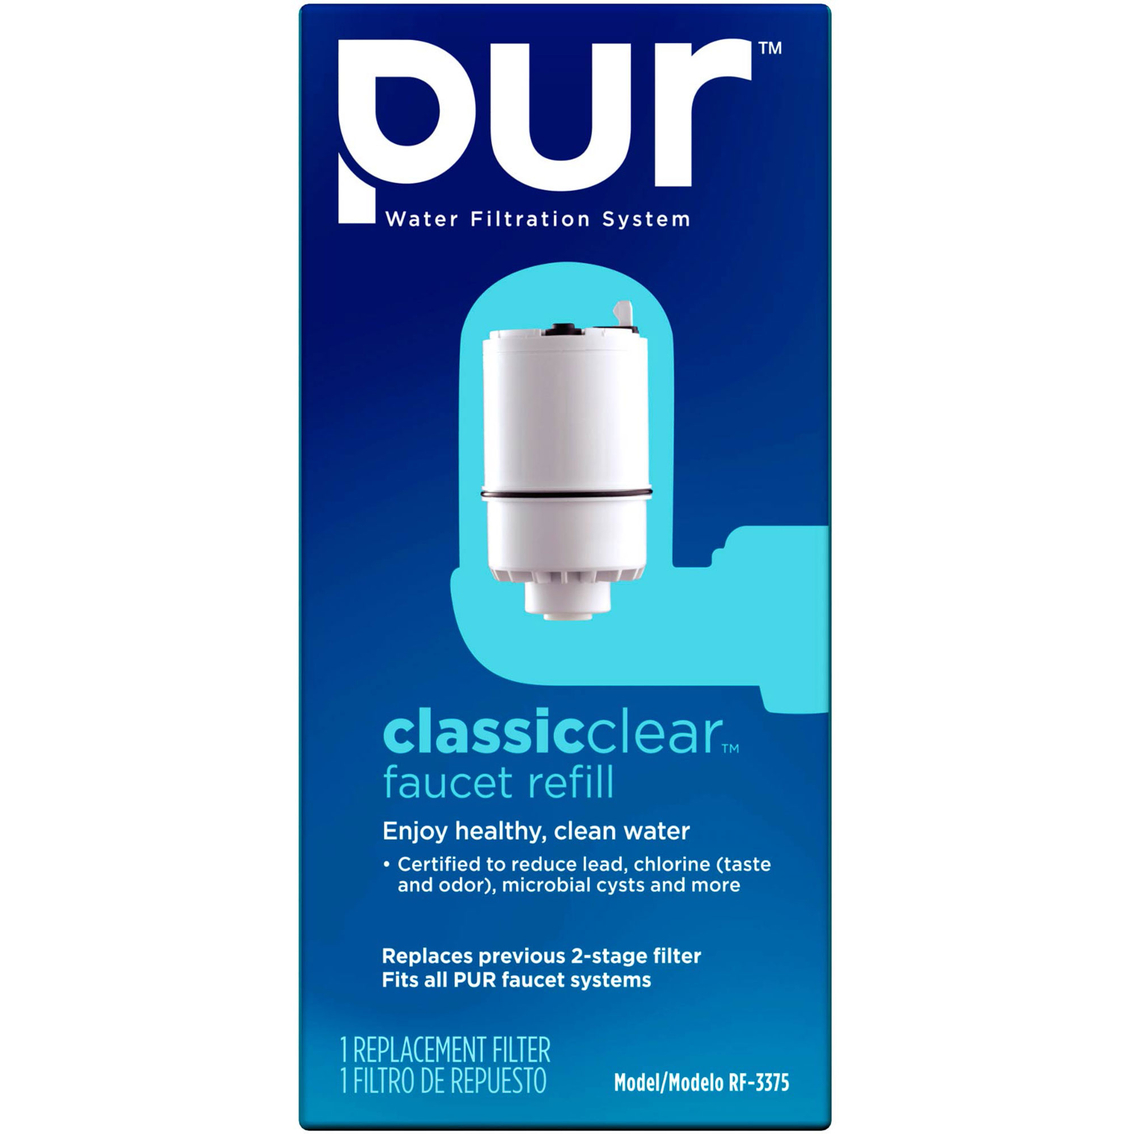 pur faucet mount water filtration system classic clear replacement filter